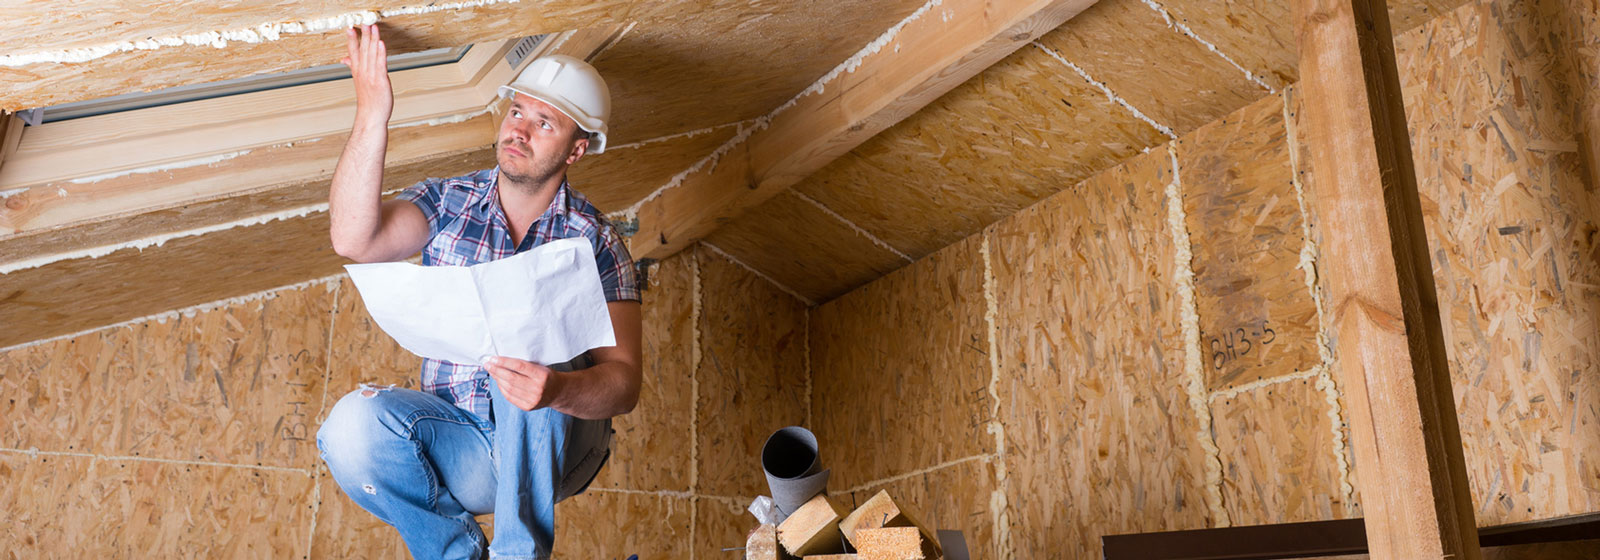 residential home inspector in attic